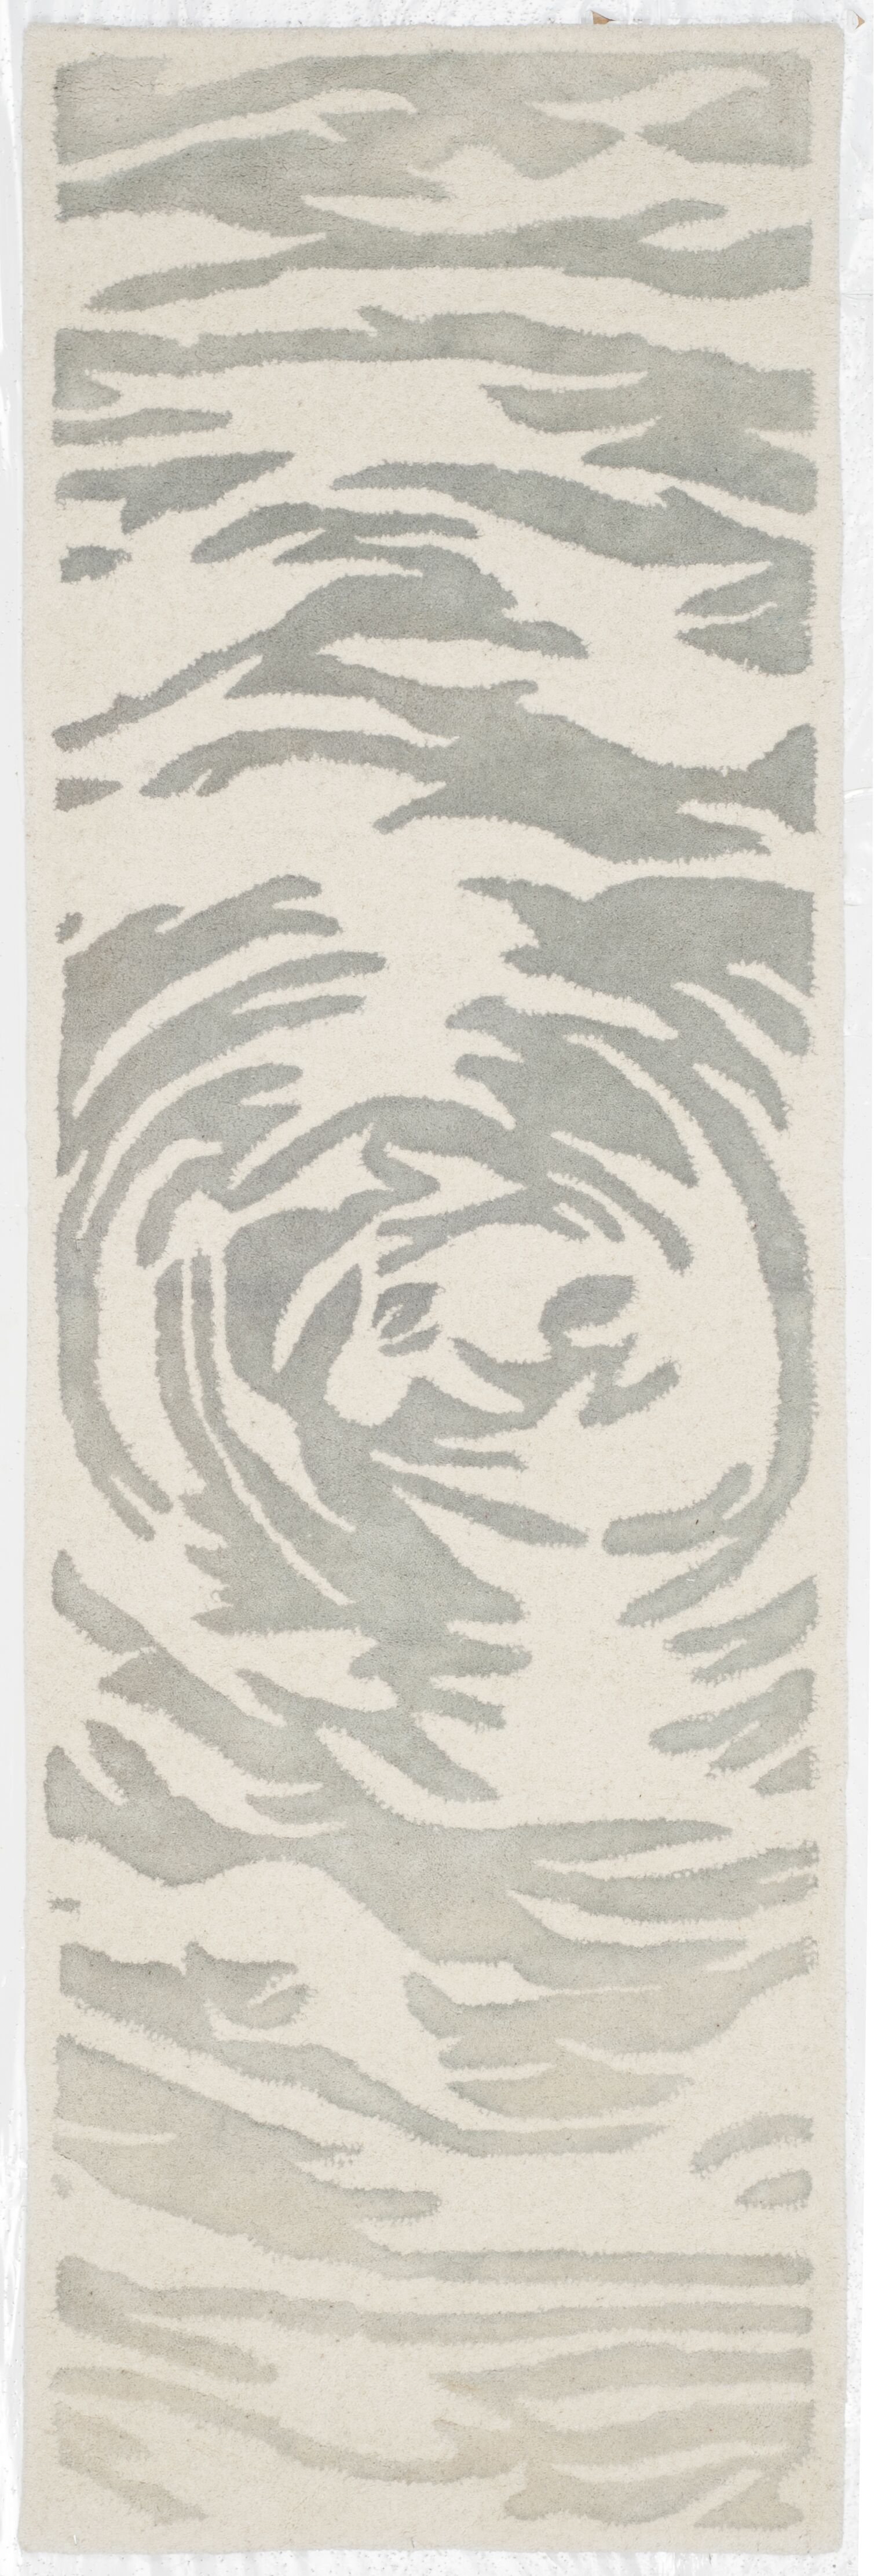 Adan Hand-Tufted Ivory/Grey Area Rug Rug Size: Runner 2'3